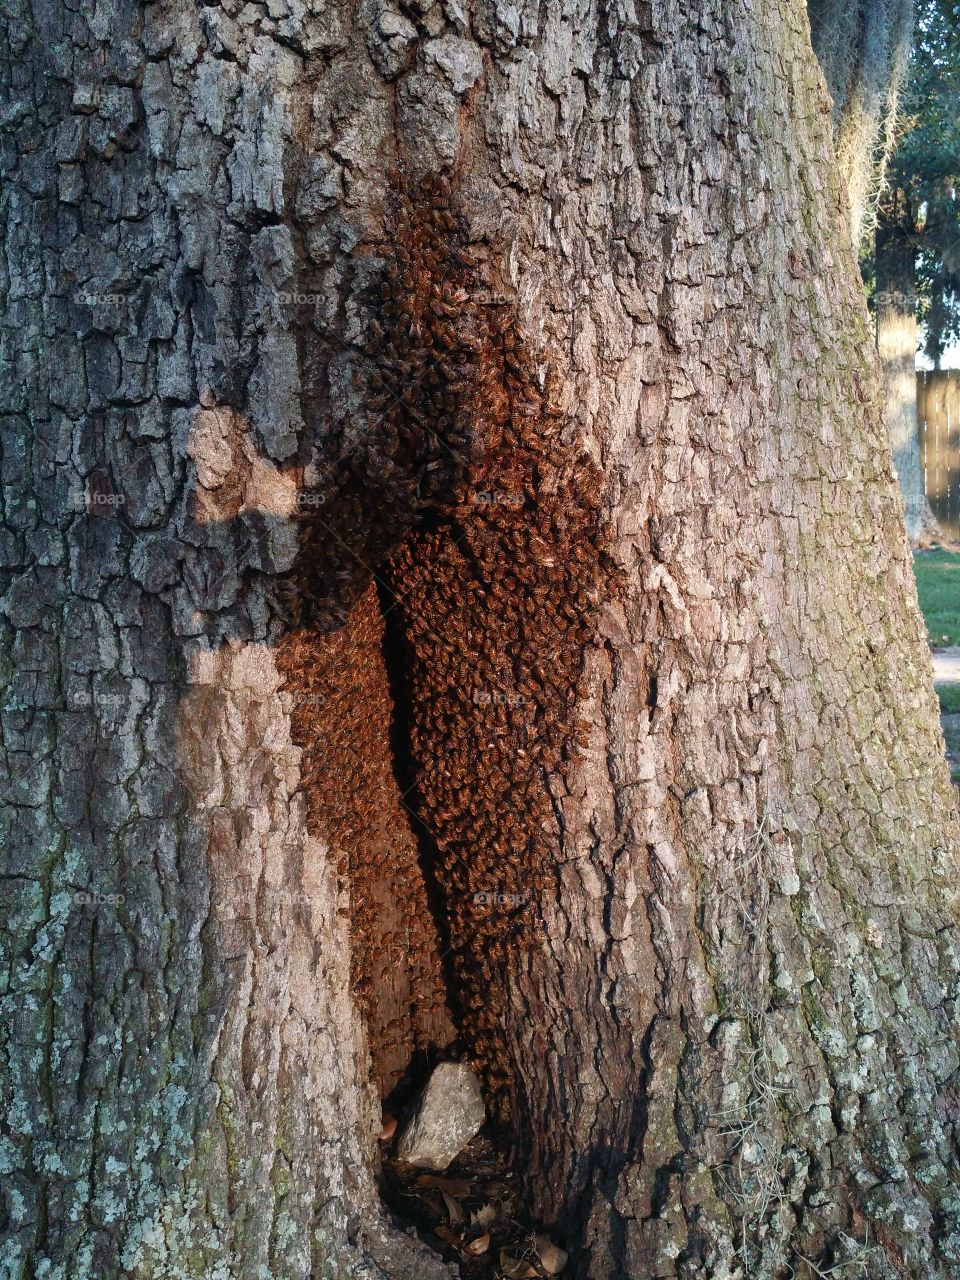 Bees in a Tree. Bees taking over a hollow in a sweet gum tree .